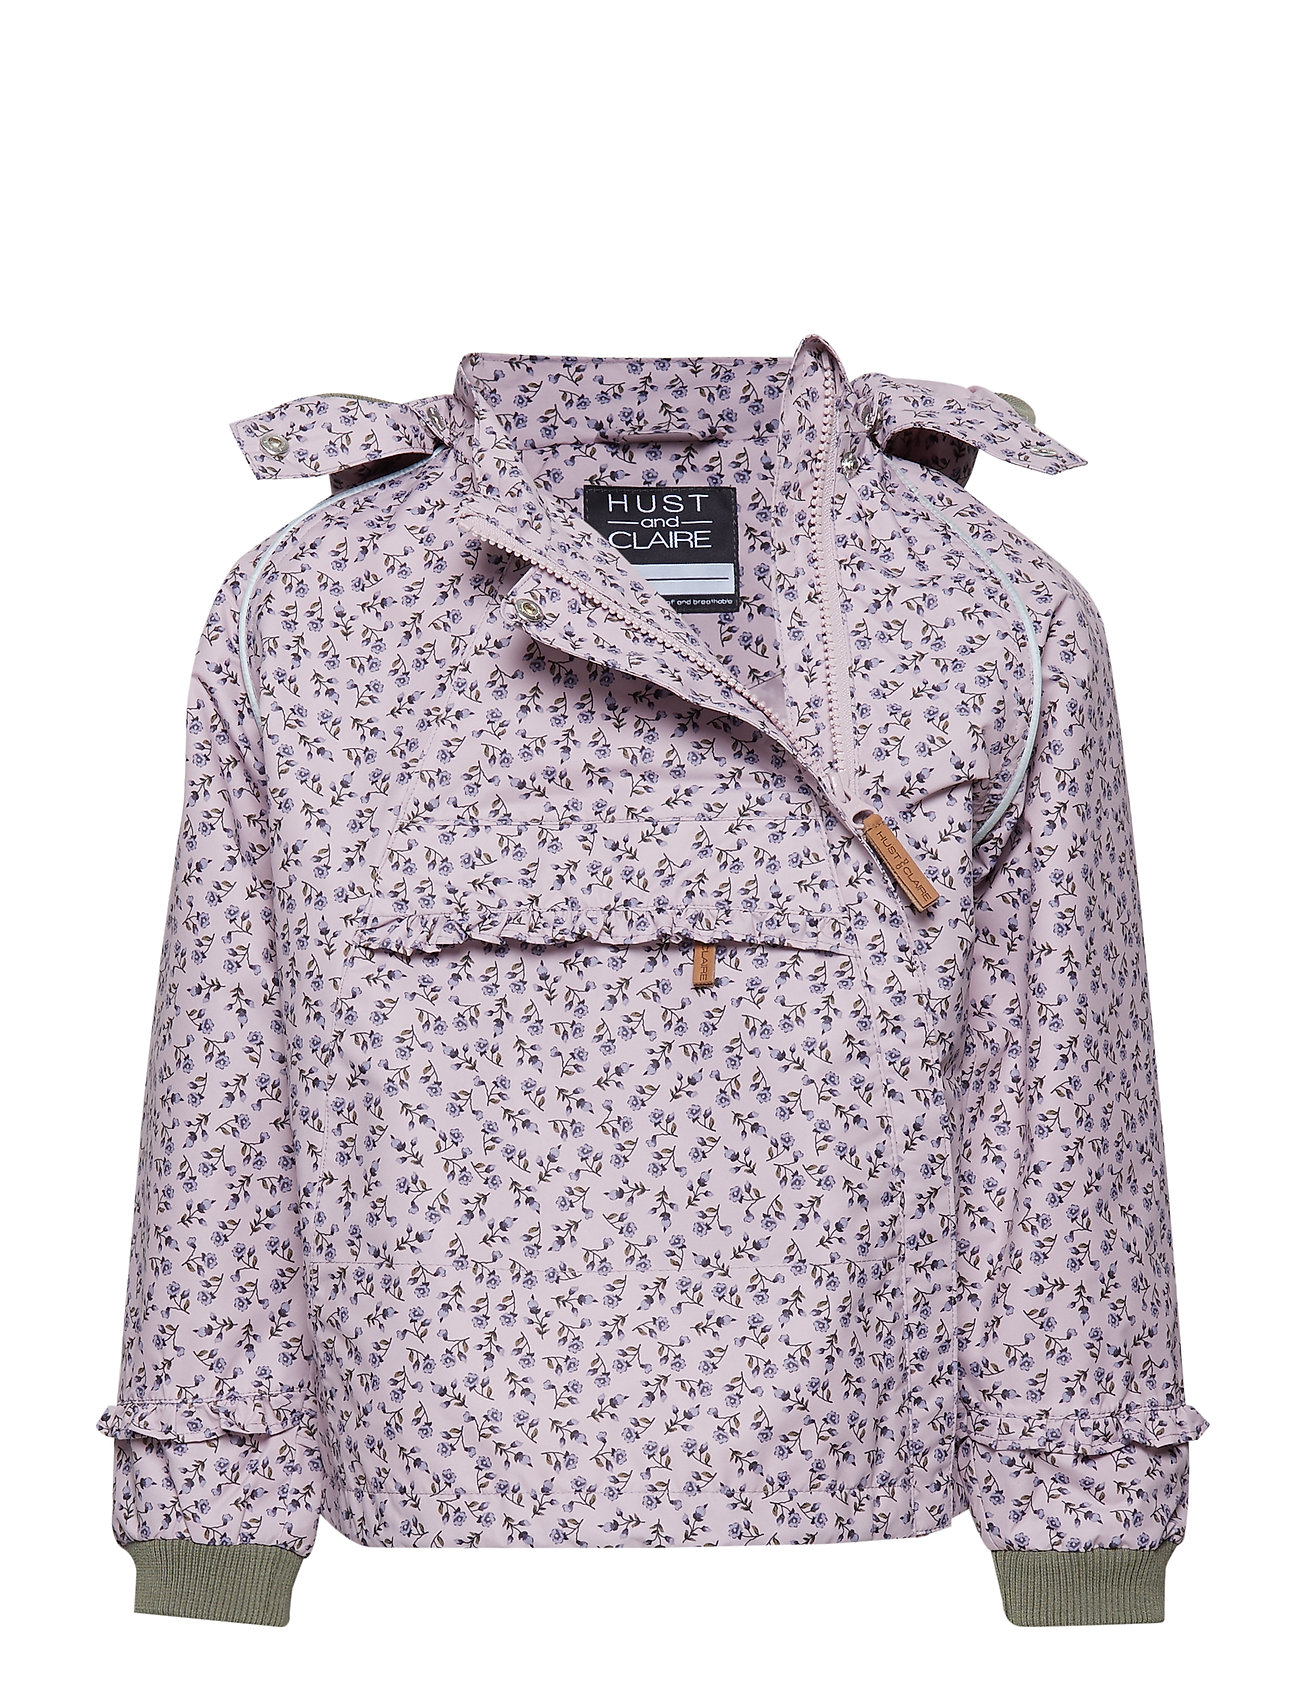 Hust & Claire Obia - Jacket - LILACISH